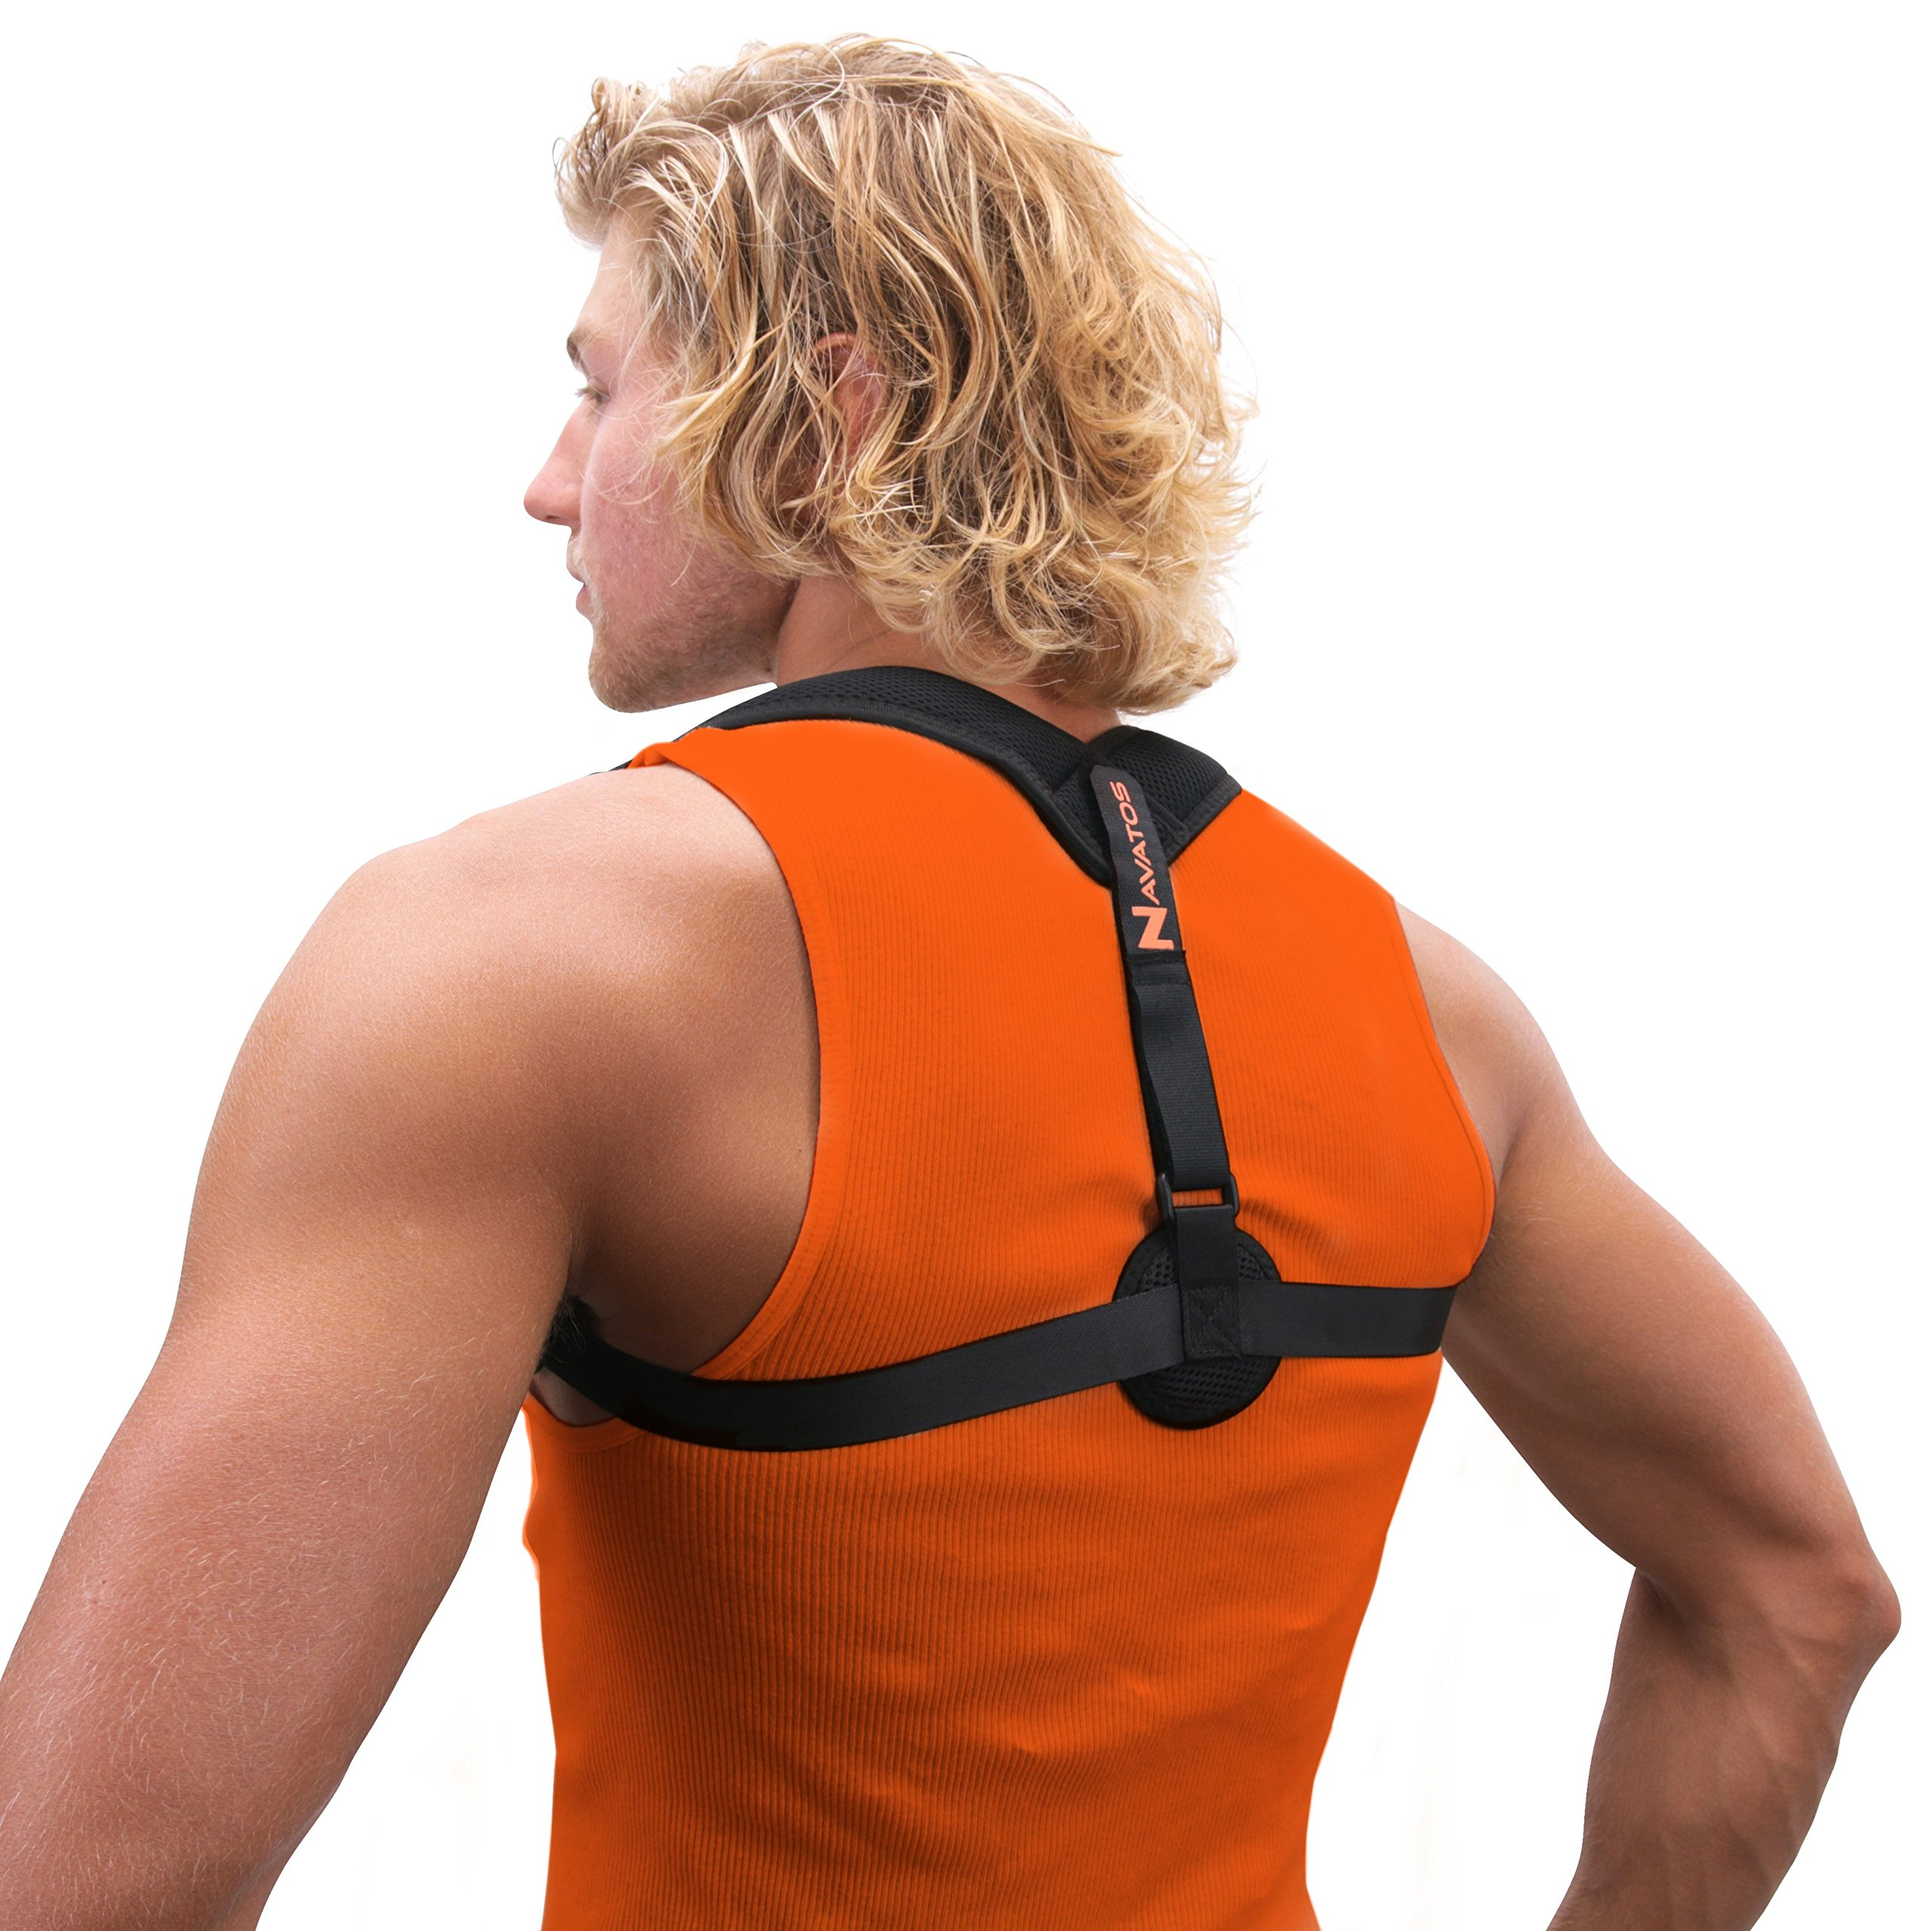 Back Posture Corrector for Men, Women, and Kids by Navatos-Fully Adjustable Professional Grade Clavicle Brace with Under Arm Pads-Breathable and Discreet Design is Unnoticeable Under Clothes